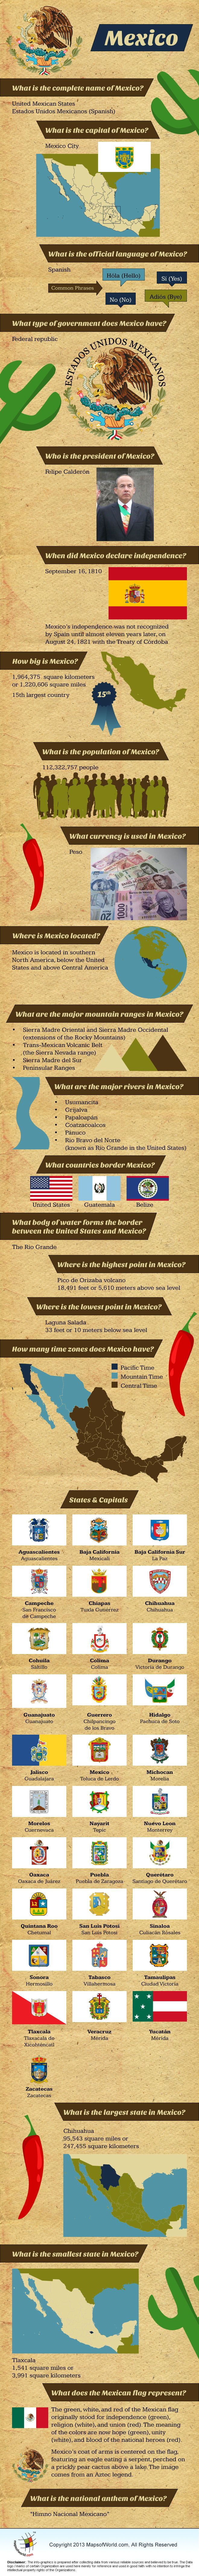 11 best mexico images on pinterest around the worlds for Fun facts about countries around the world